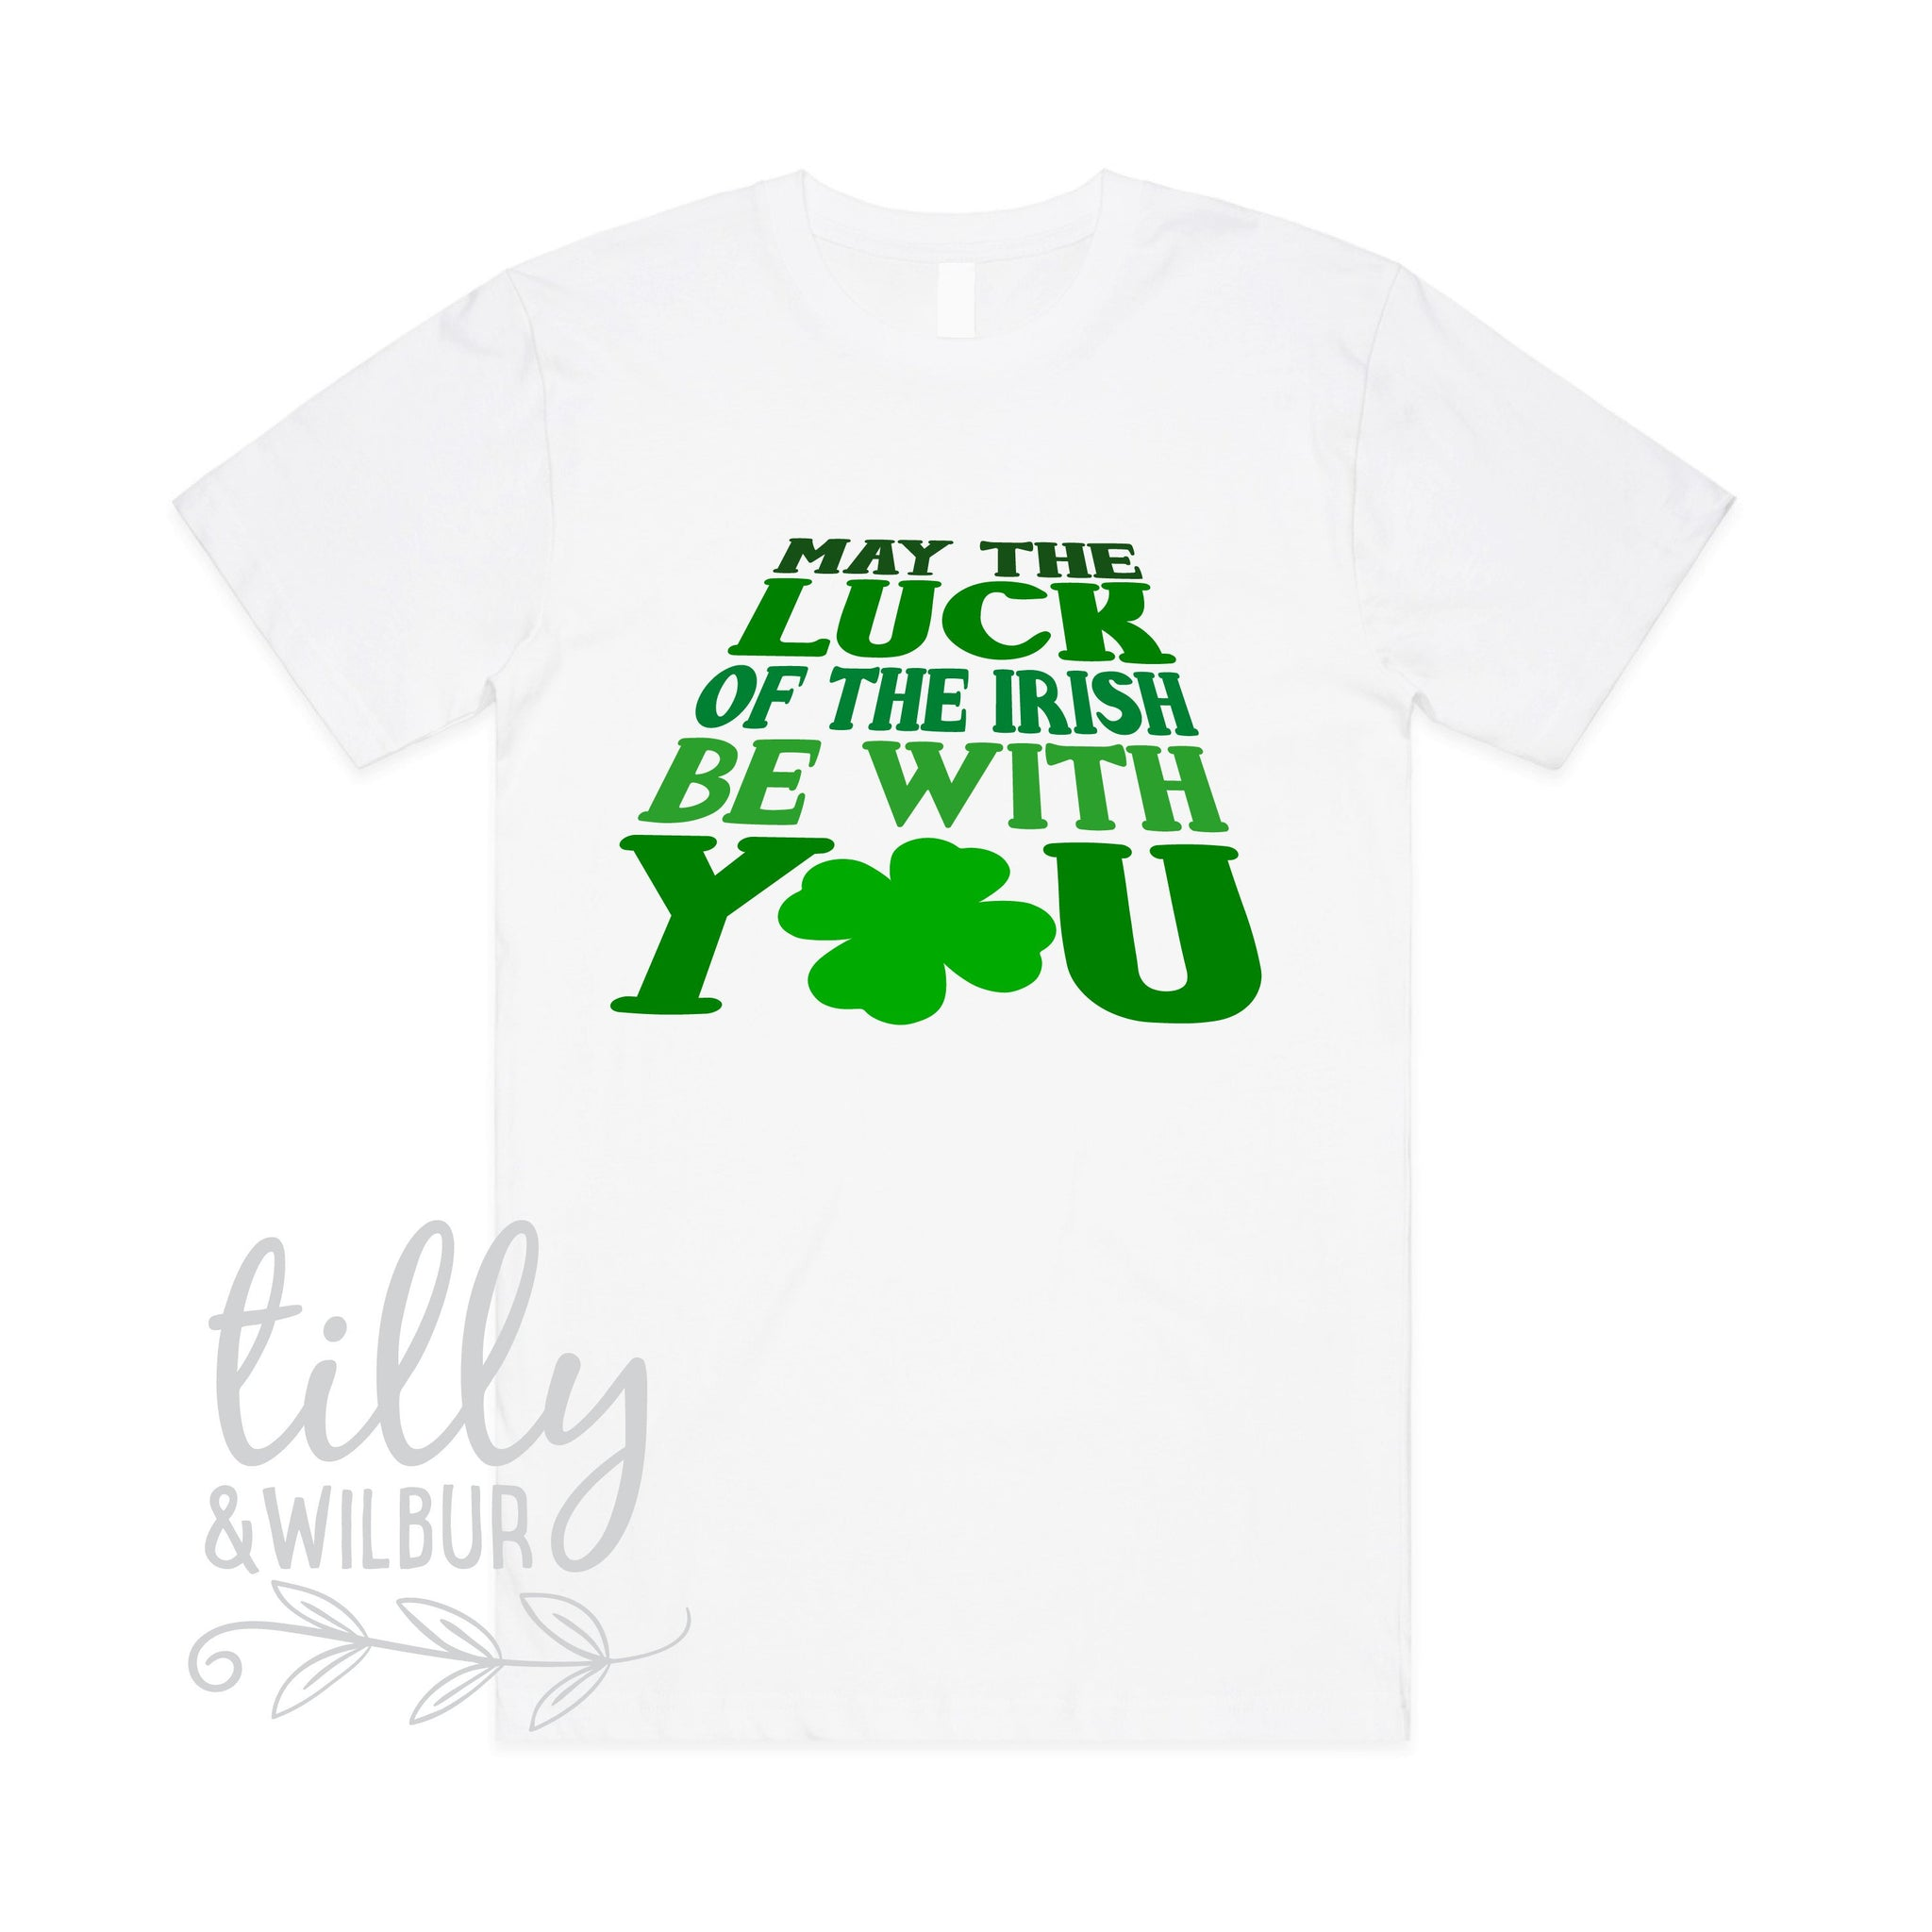 f30c7e558 May The Luck Of The Irish Be With You Men's T-Shirt - Tilly&Wilbur®